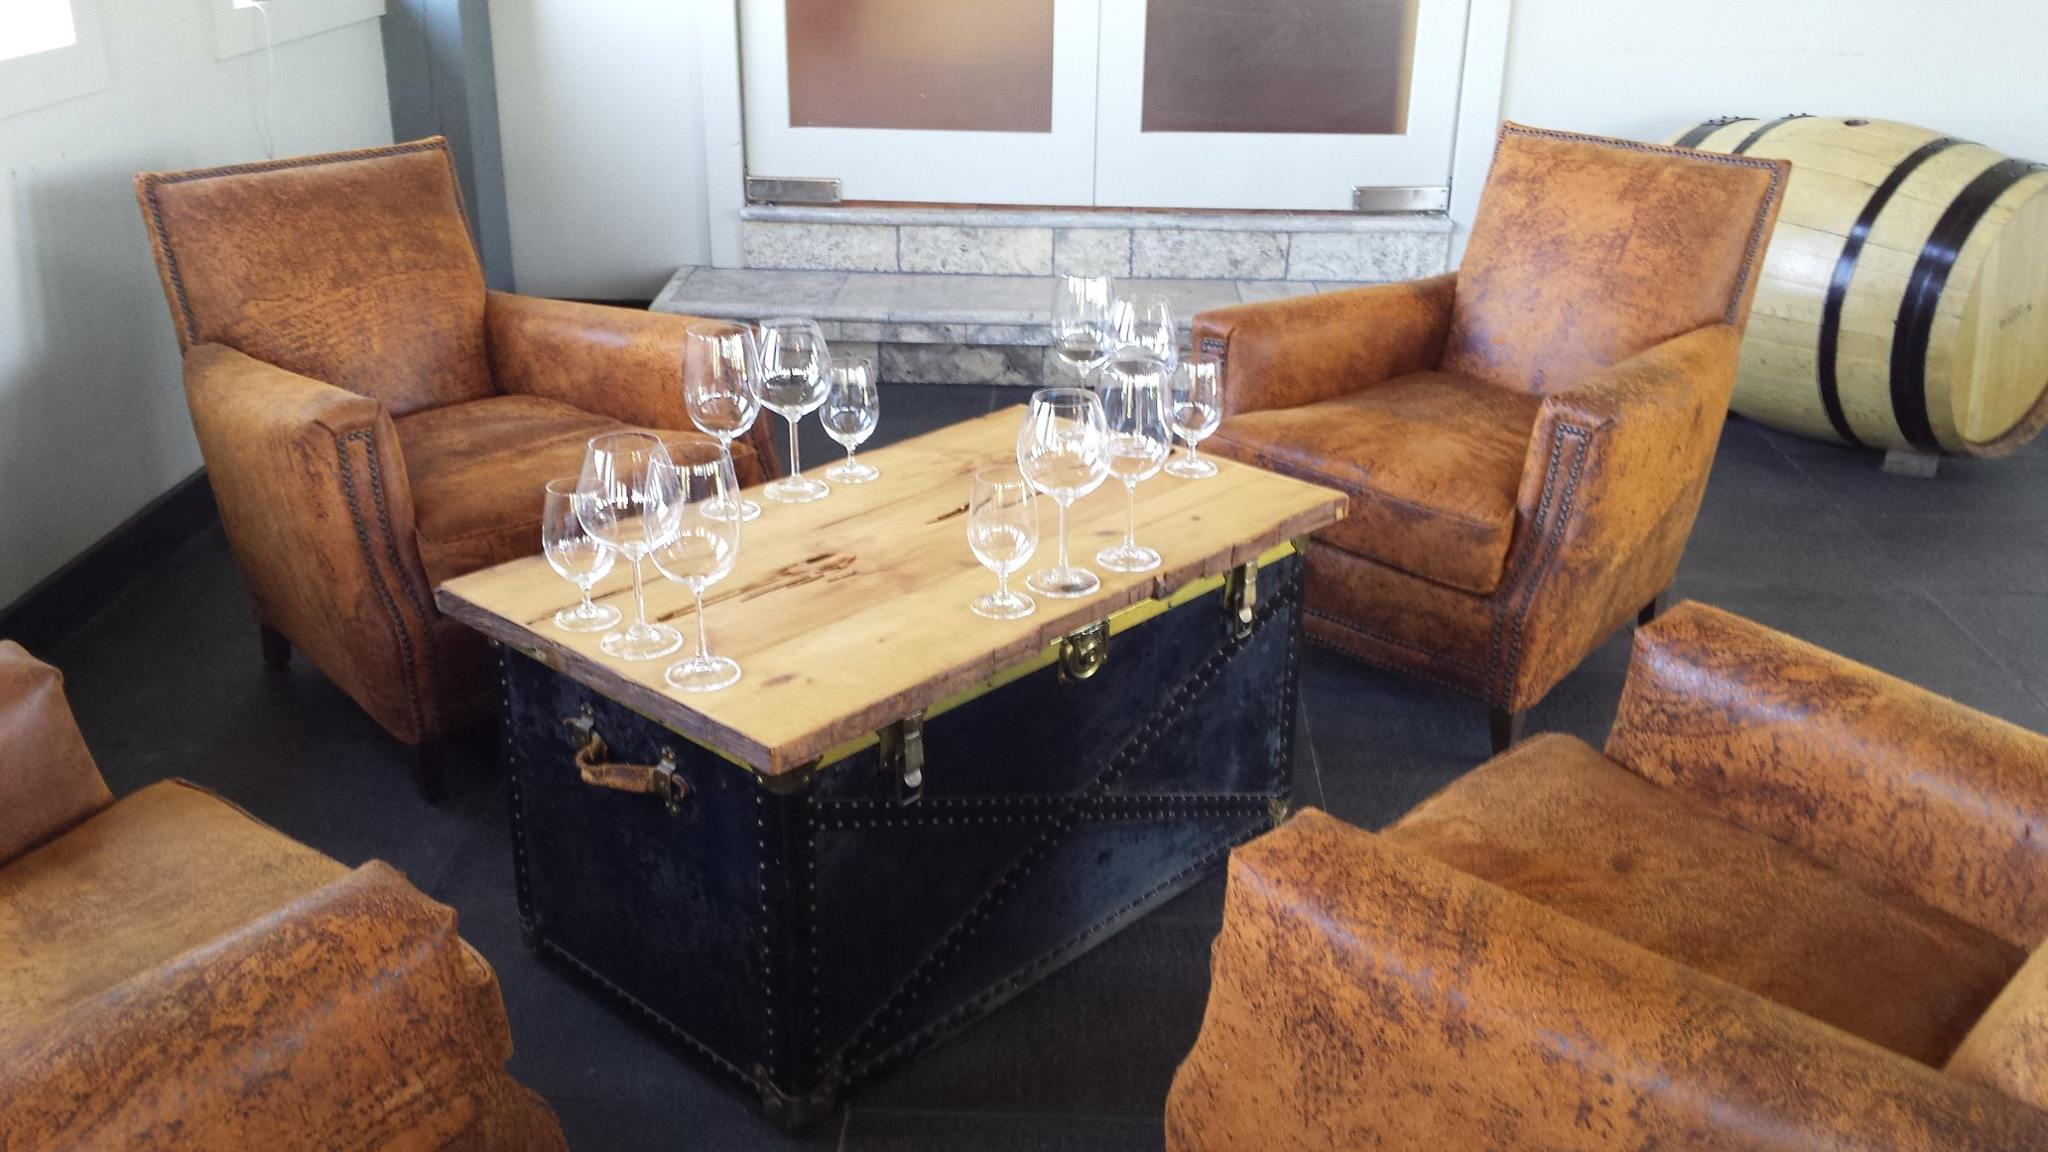 Get to Domaine Quaylus in a charter bus rental, and taste their wine offerings in theyr cozy tasting corner.